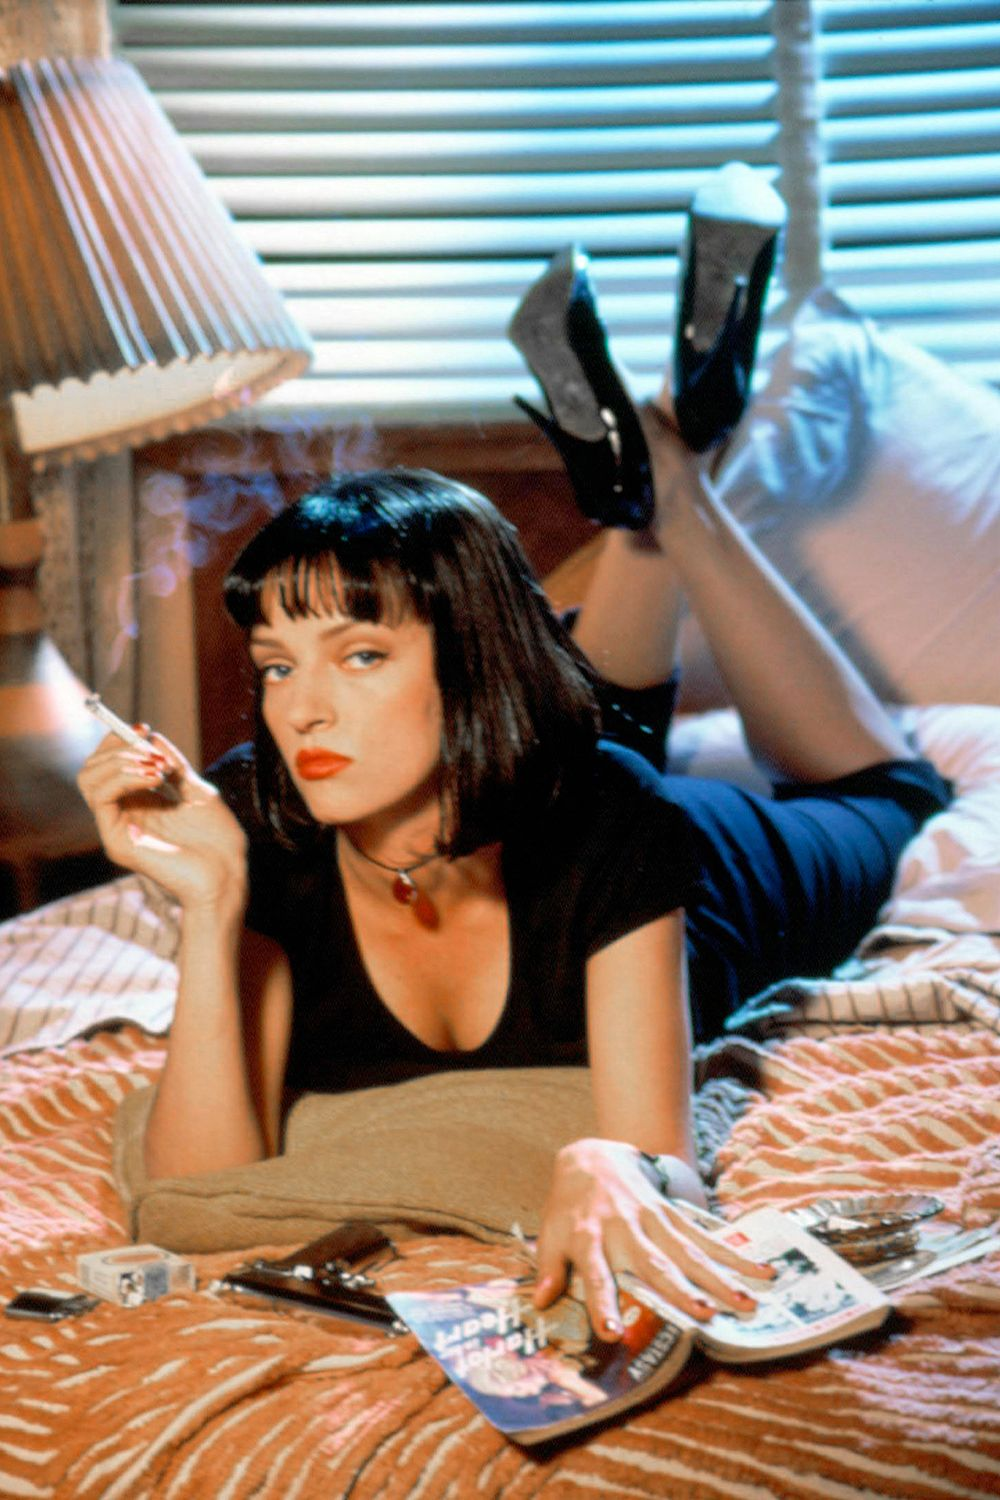 Pulp Fiction (1994) This black comedy made up of several interwoven stories of characters involved in a world of crime and violence cemented Quentin Tarantino's popularity. Pulp Fiction is self-referential, out of chronological order, and entirely iconic.